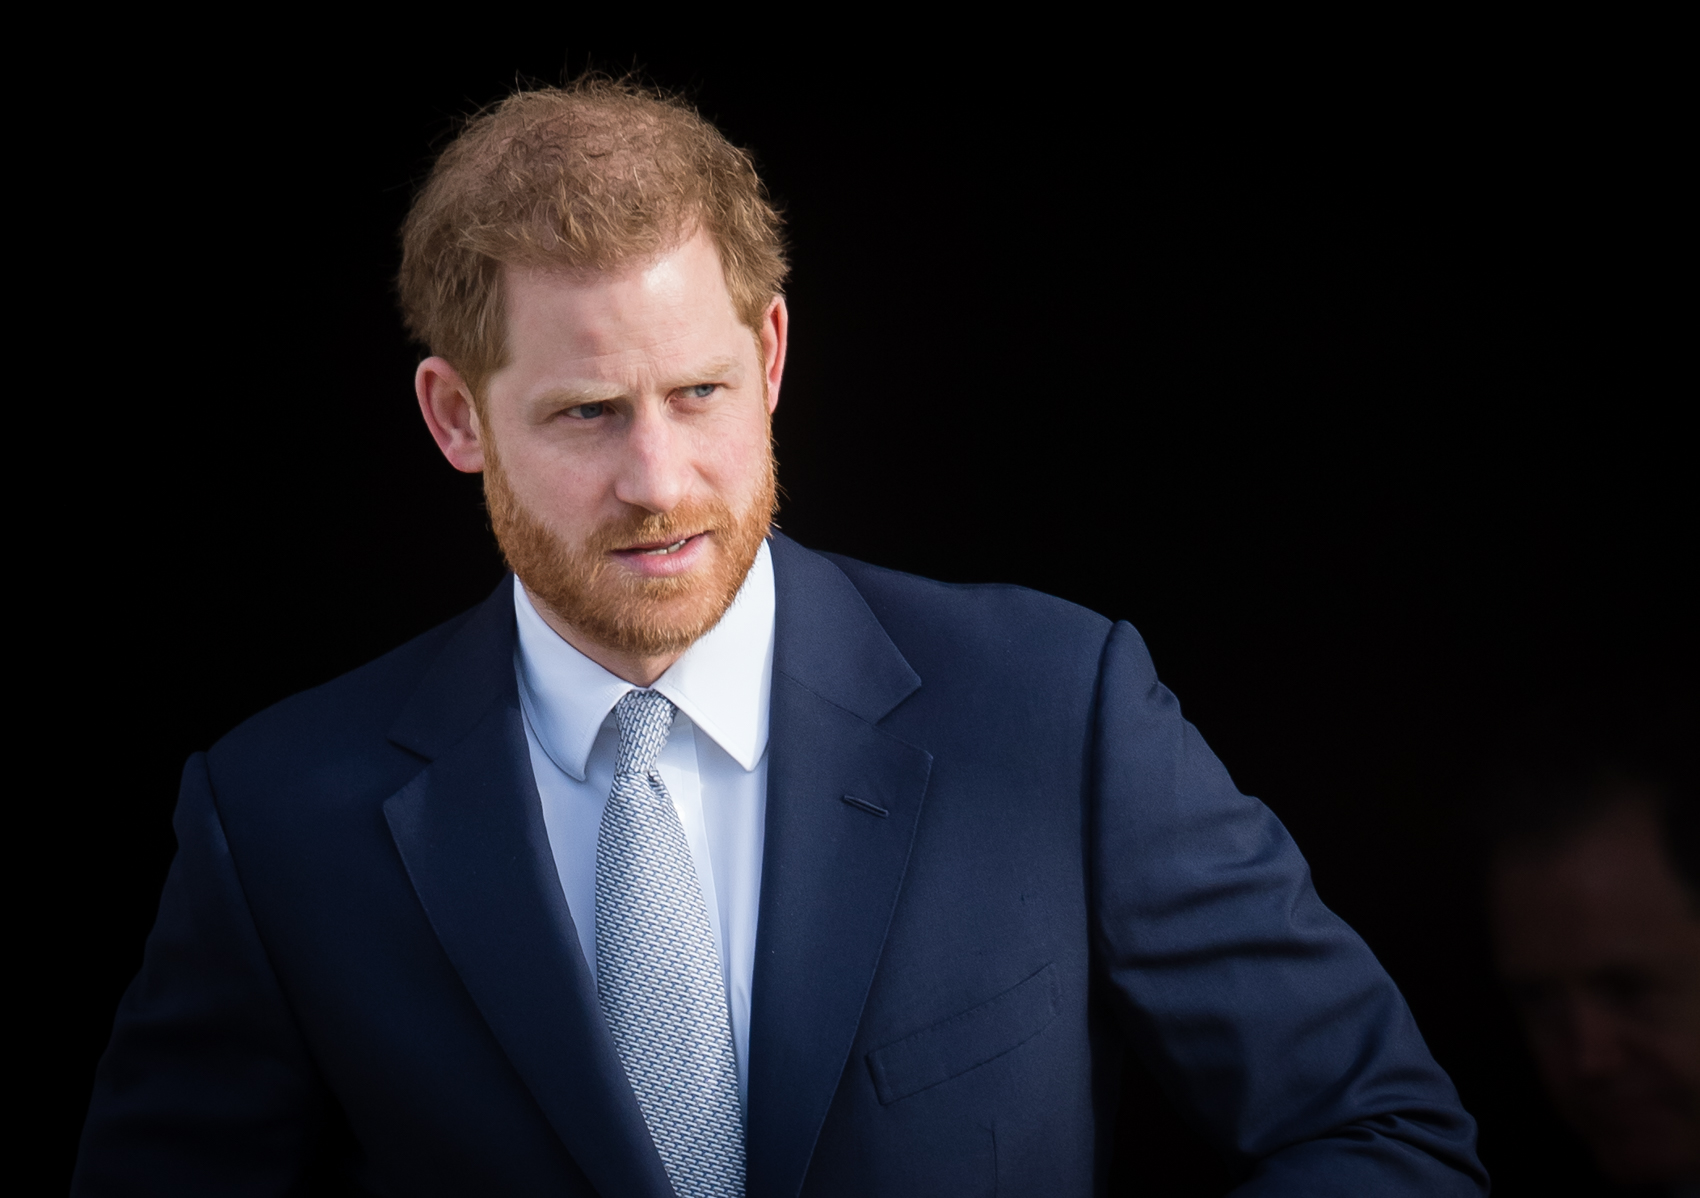 Royal fans think detail in new post reveals Prince Harry has had his last royal engagement